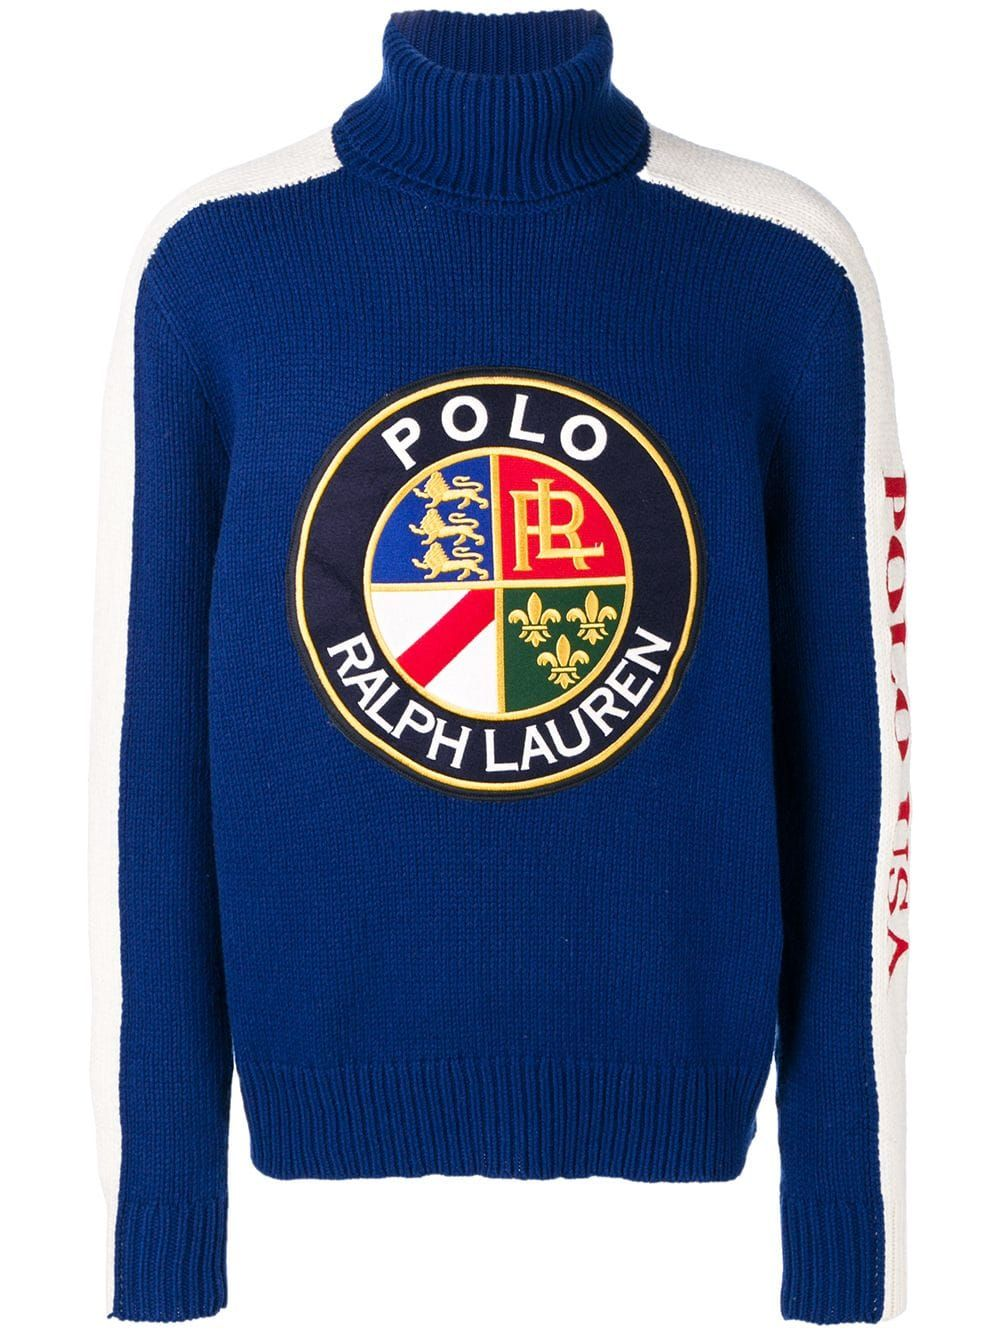 save off f5399 26587 Polo Ralph Lauren logo patch sweater - Blue in 2019 ...